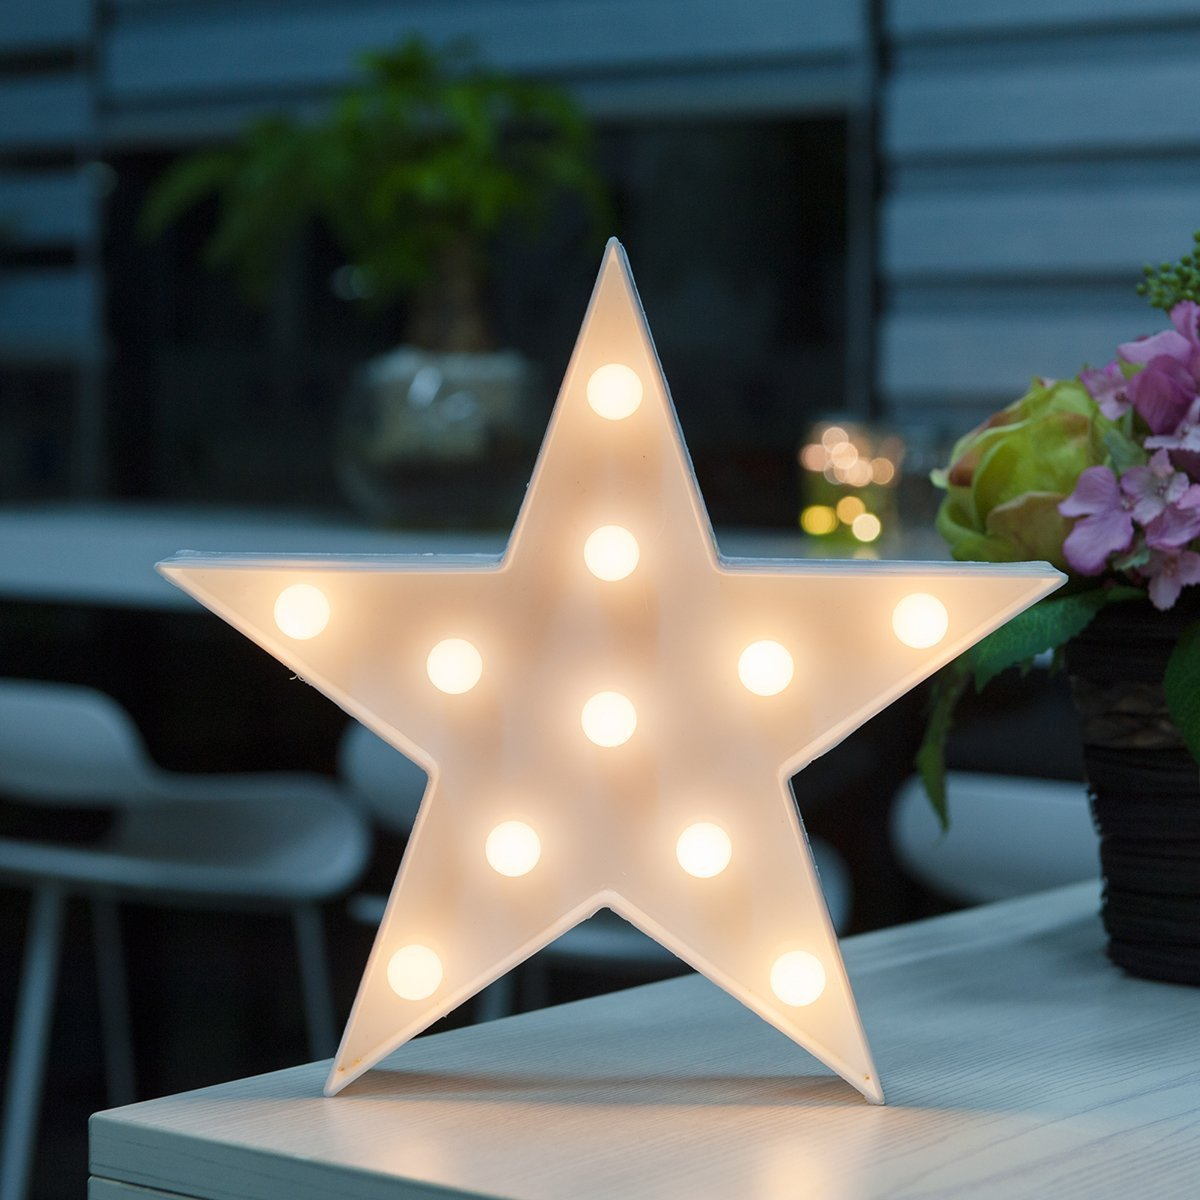 WED LED Star Marquee Sign Lights, Star Shaped LED Night Lamp Light for Home Wall/Chistmas/Table/Birthday/Party/Wedding/Bedroom/Living Room Decorations, Children Kids Gifts